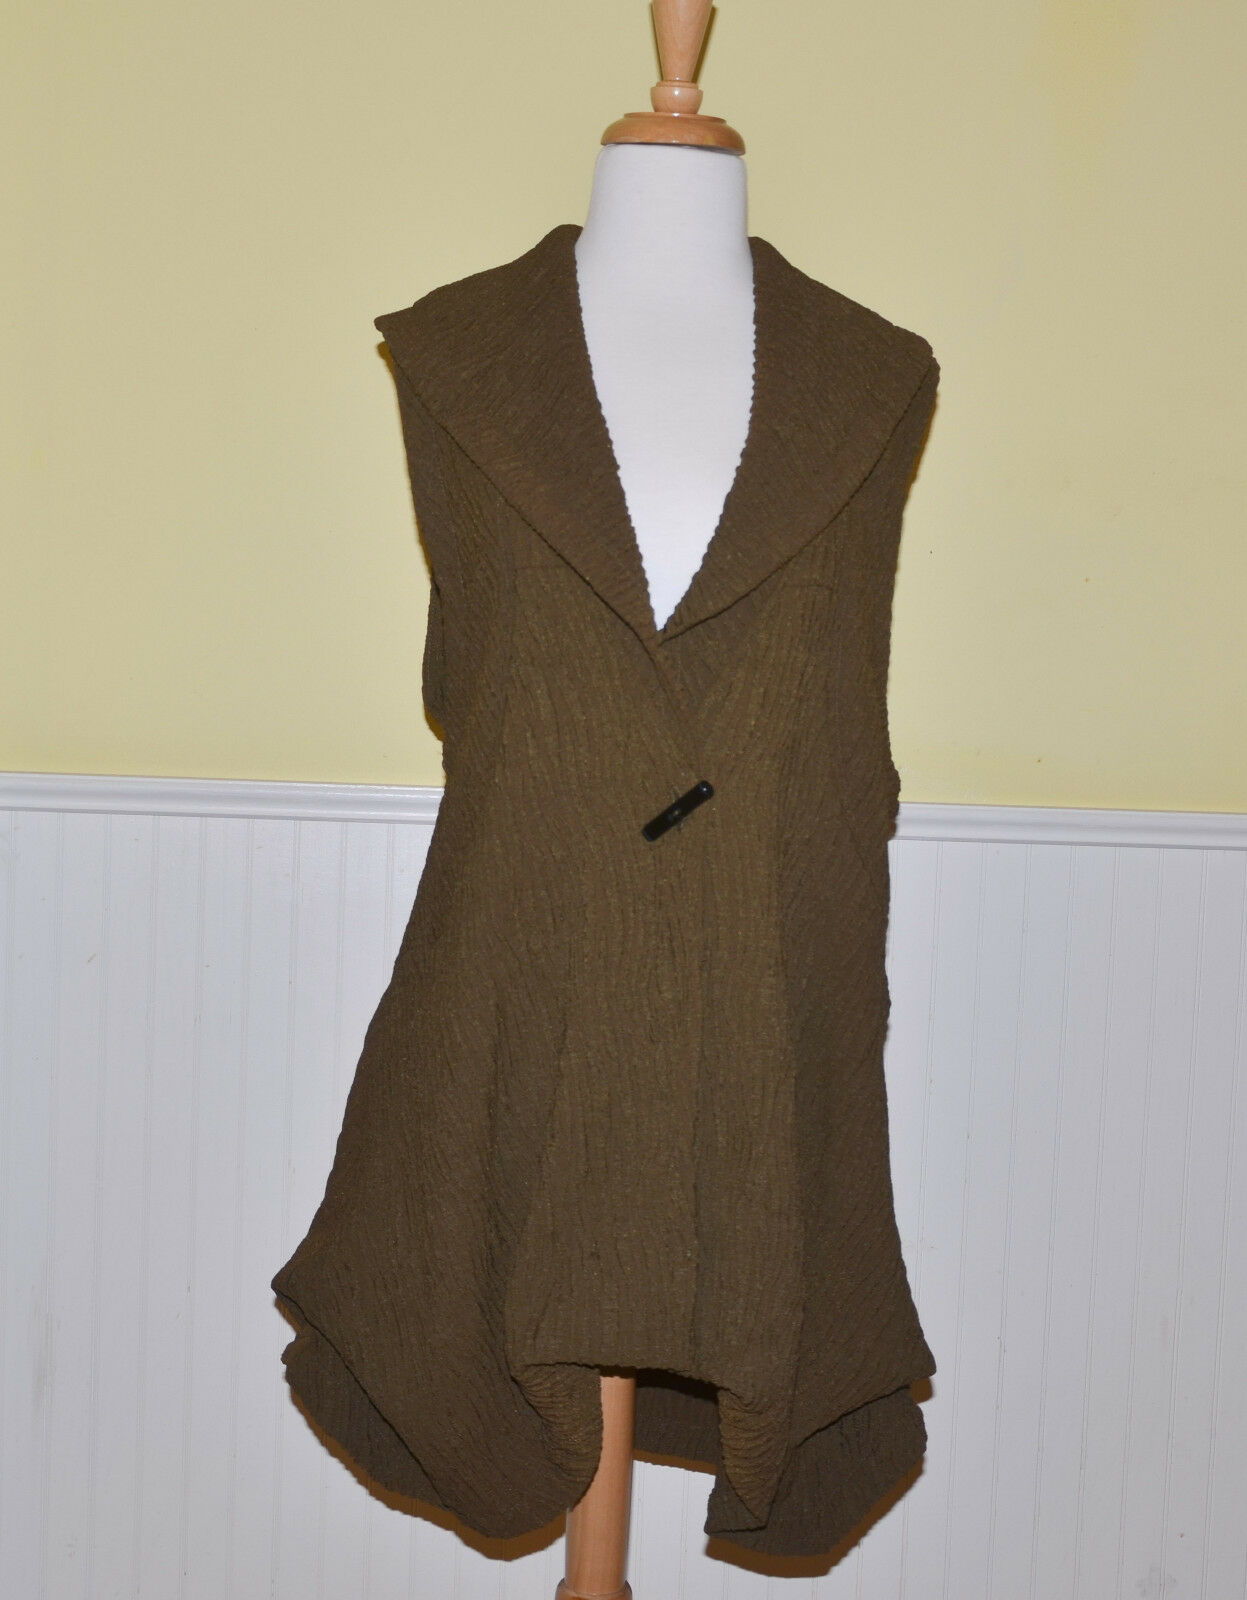 Connies Moonlight womens vest new olive green color high fashion NWT